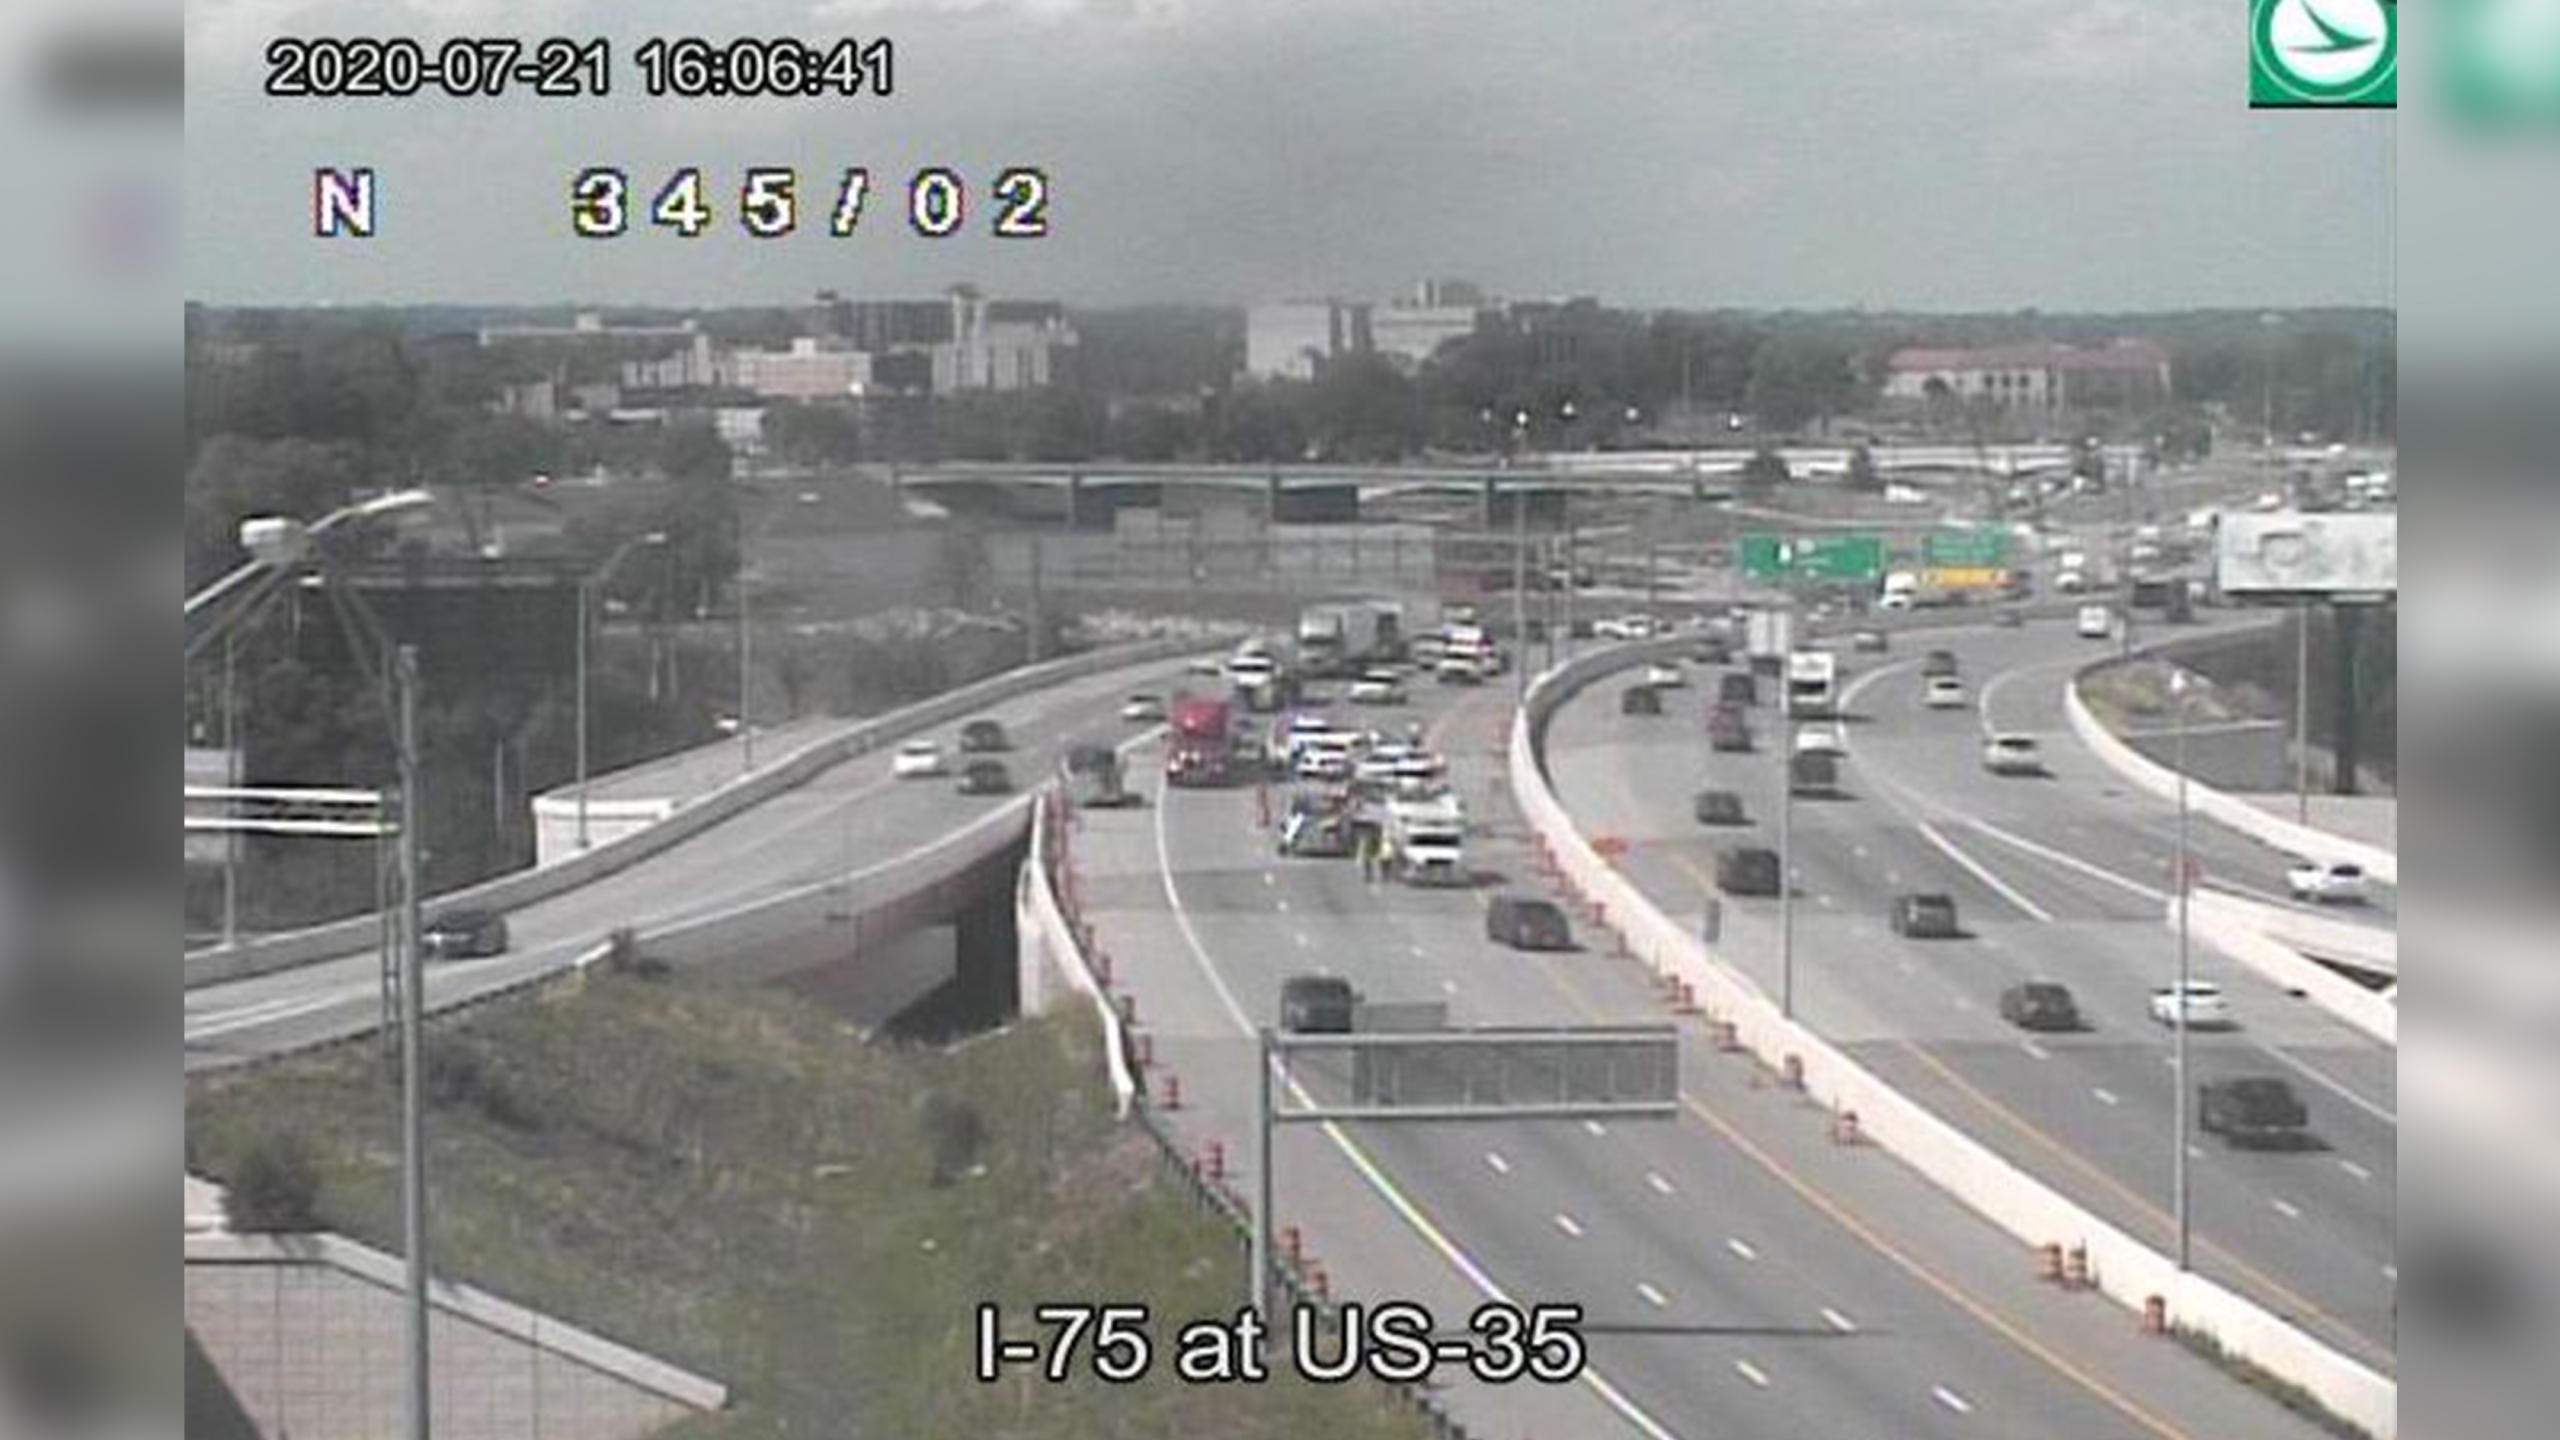 i-75 and us-35